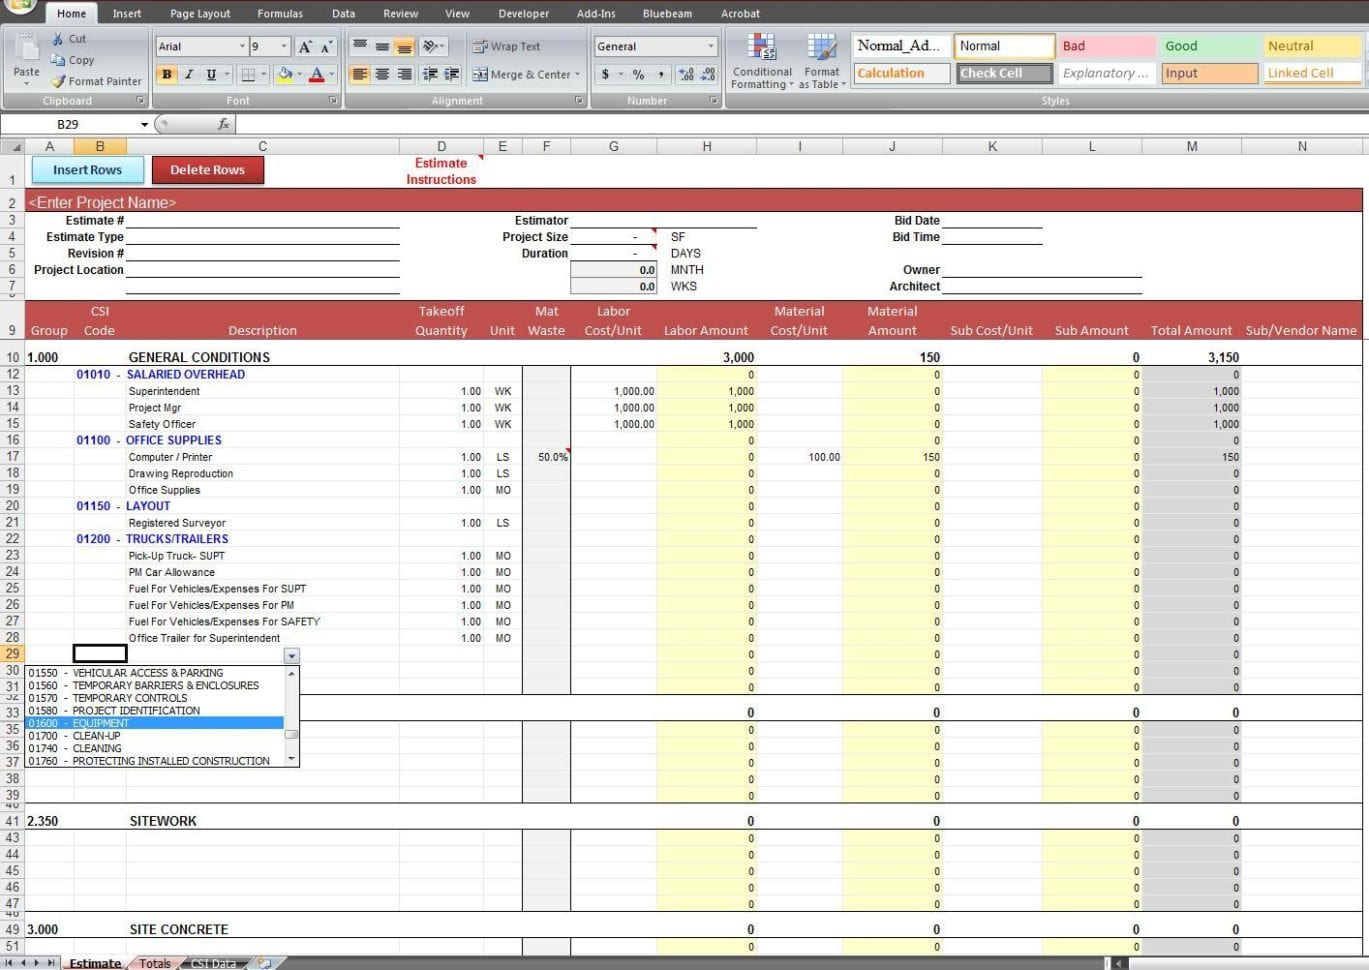 Expense Tracking Software Personal Expenses Template Sample Spreadsheet For Tracking Expenses Daily Income And Expense Excel Sheet Expense Report Forms Printable Daily Expenses Sheet In Excel Format Free Download Income And Expenditure Template For Small Business  Construction Job Costing Spreadsheet Template Expense Spreadsheet Template Spreadsheet Templates for Busines